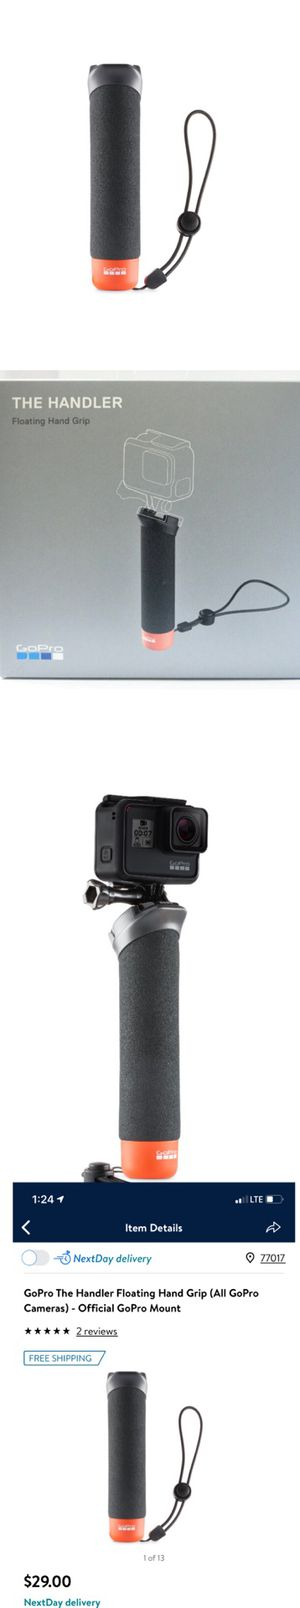 GoPro Floating Hand Grip (2) / $25 for Sale in Houston, TX